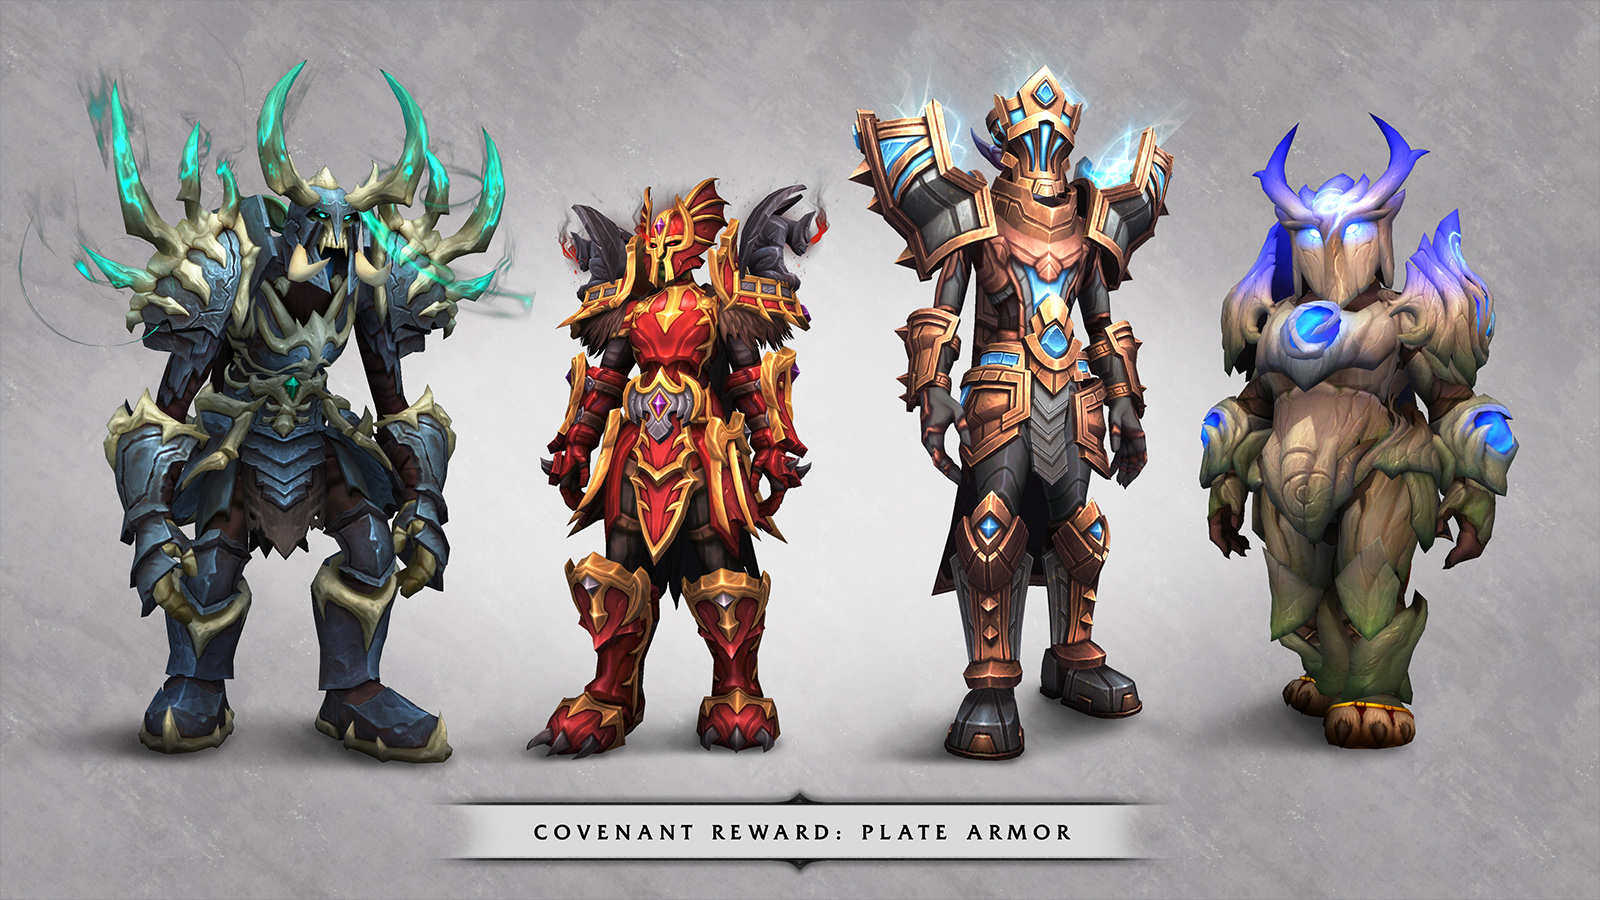 Picture of Plat Armor rewards for Covenants